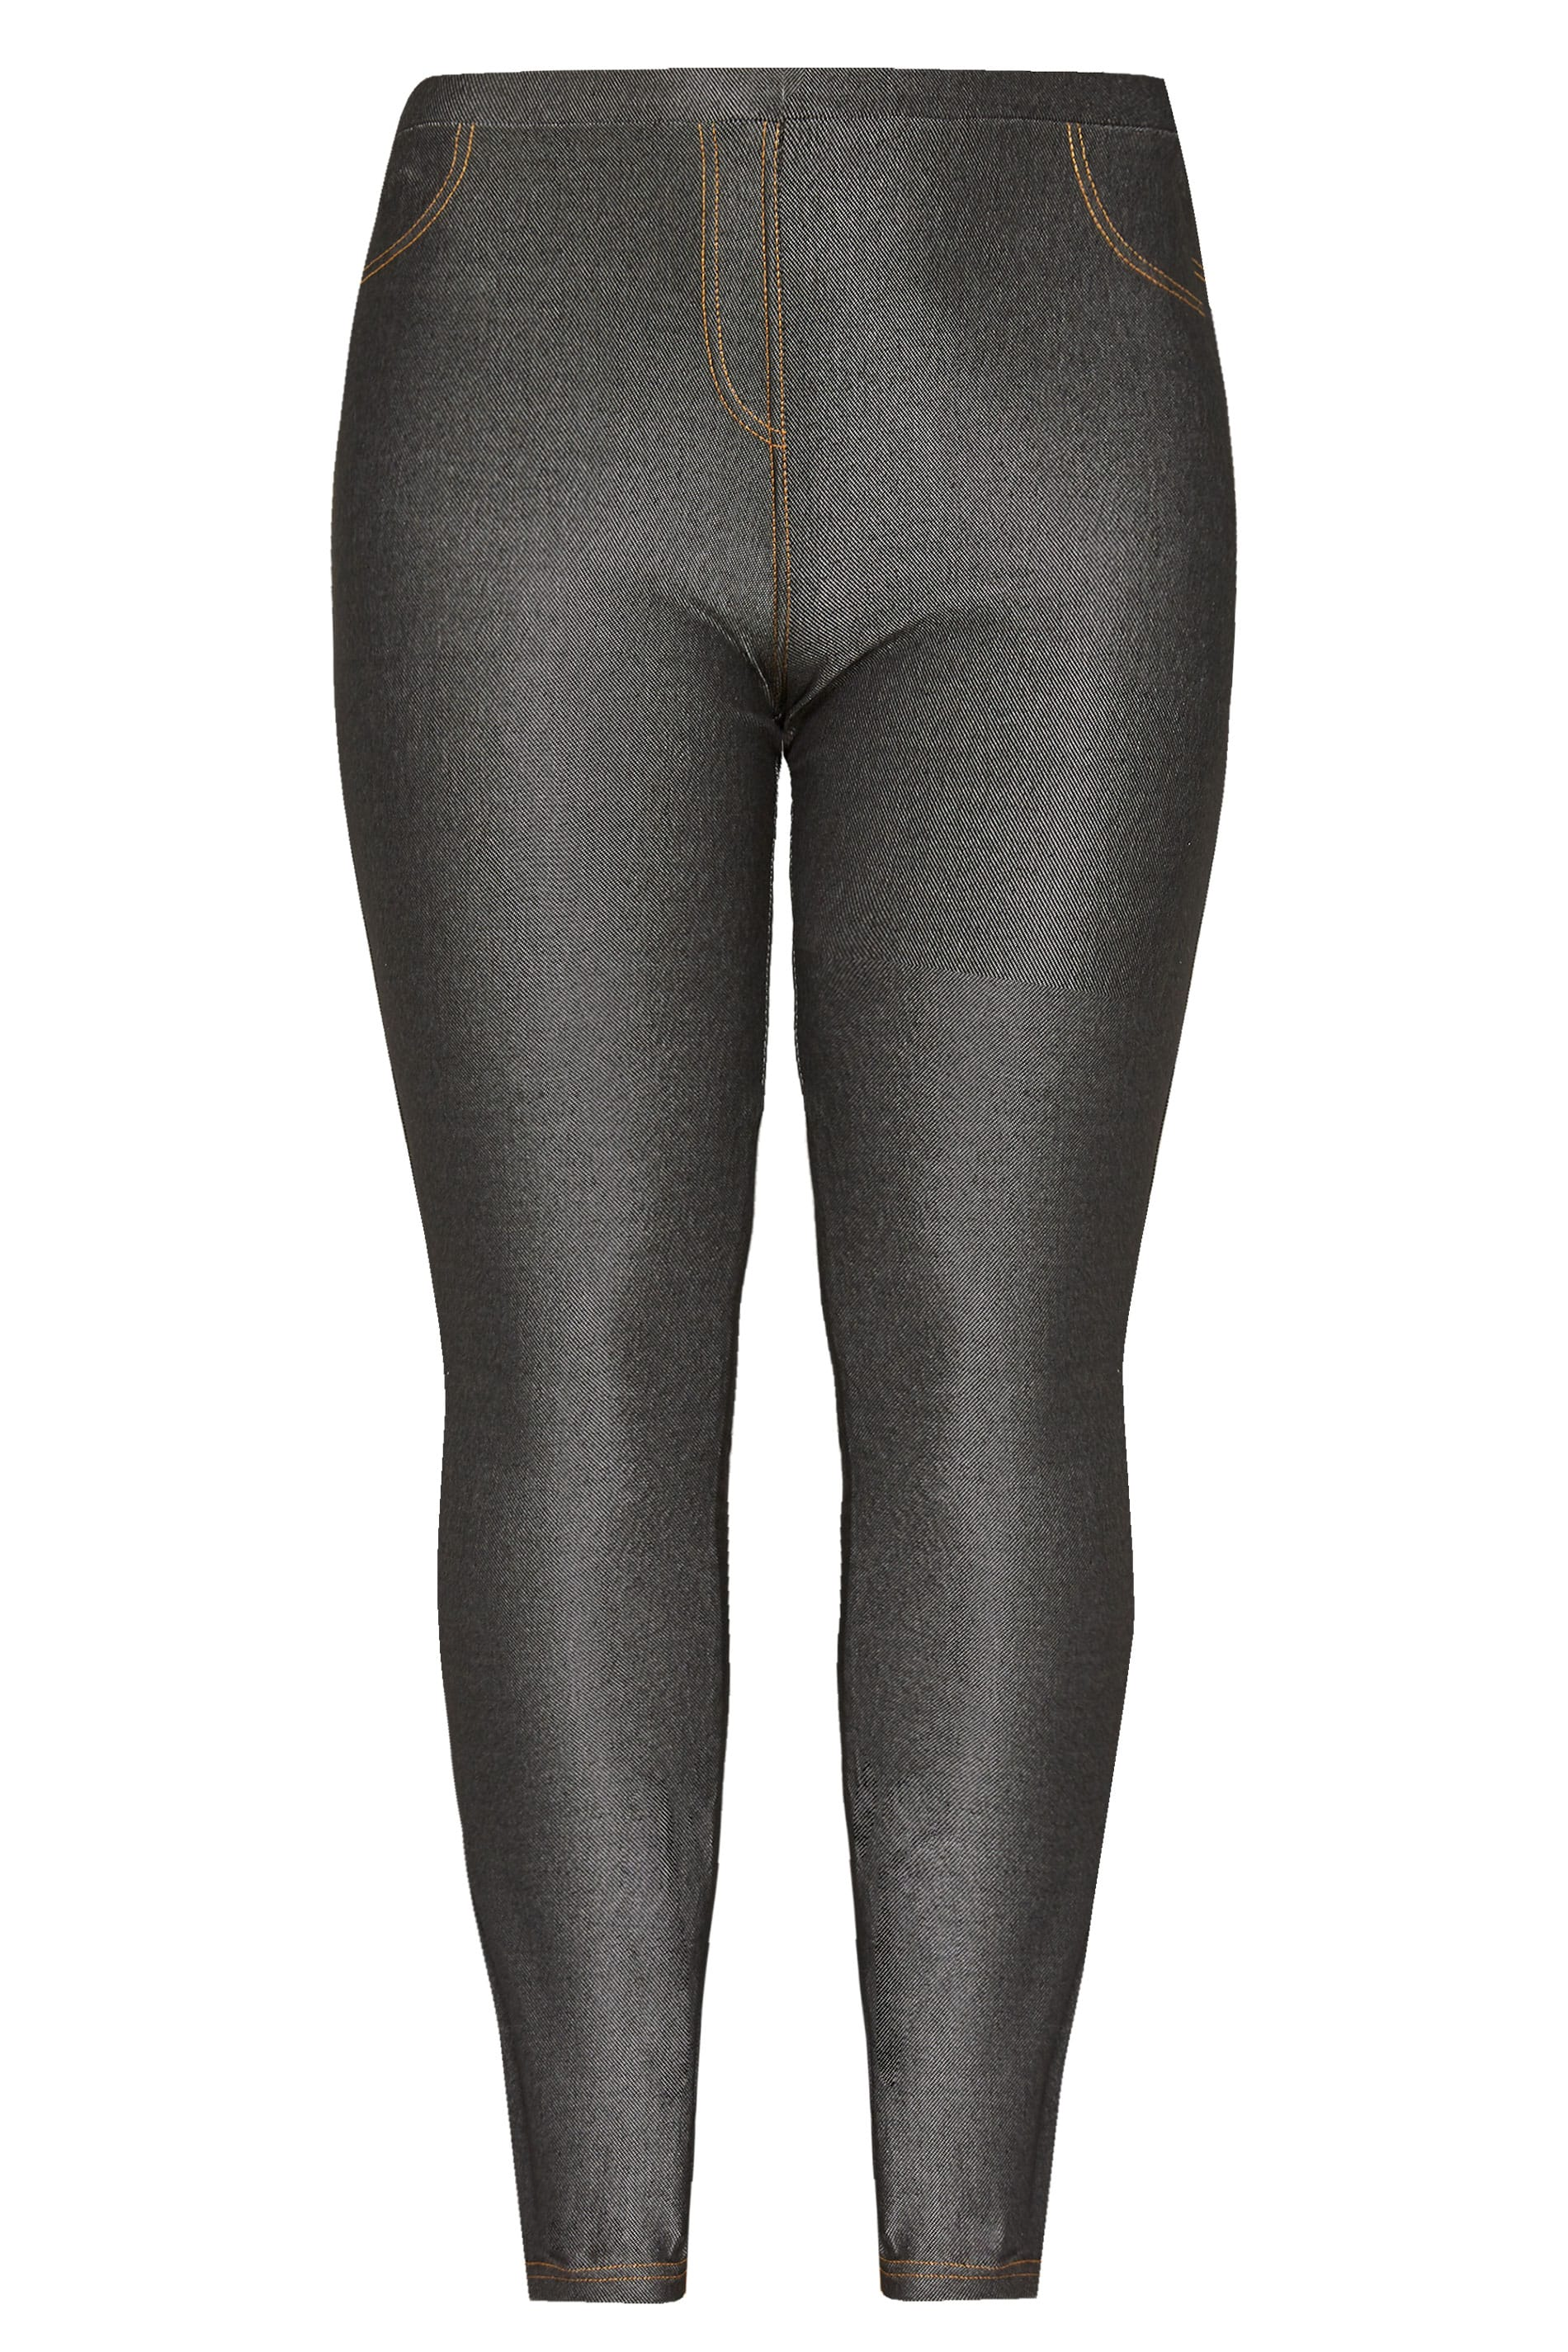 3d58b185a63b8 SIZE UP Black Full Length Jeggings | Sizes 16 to 36 | Yours Clothing